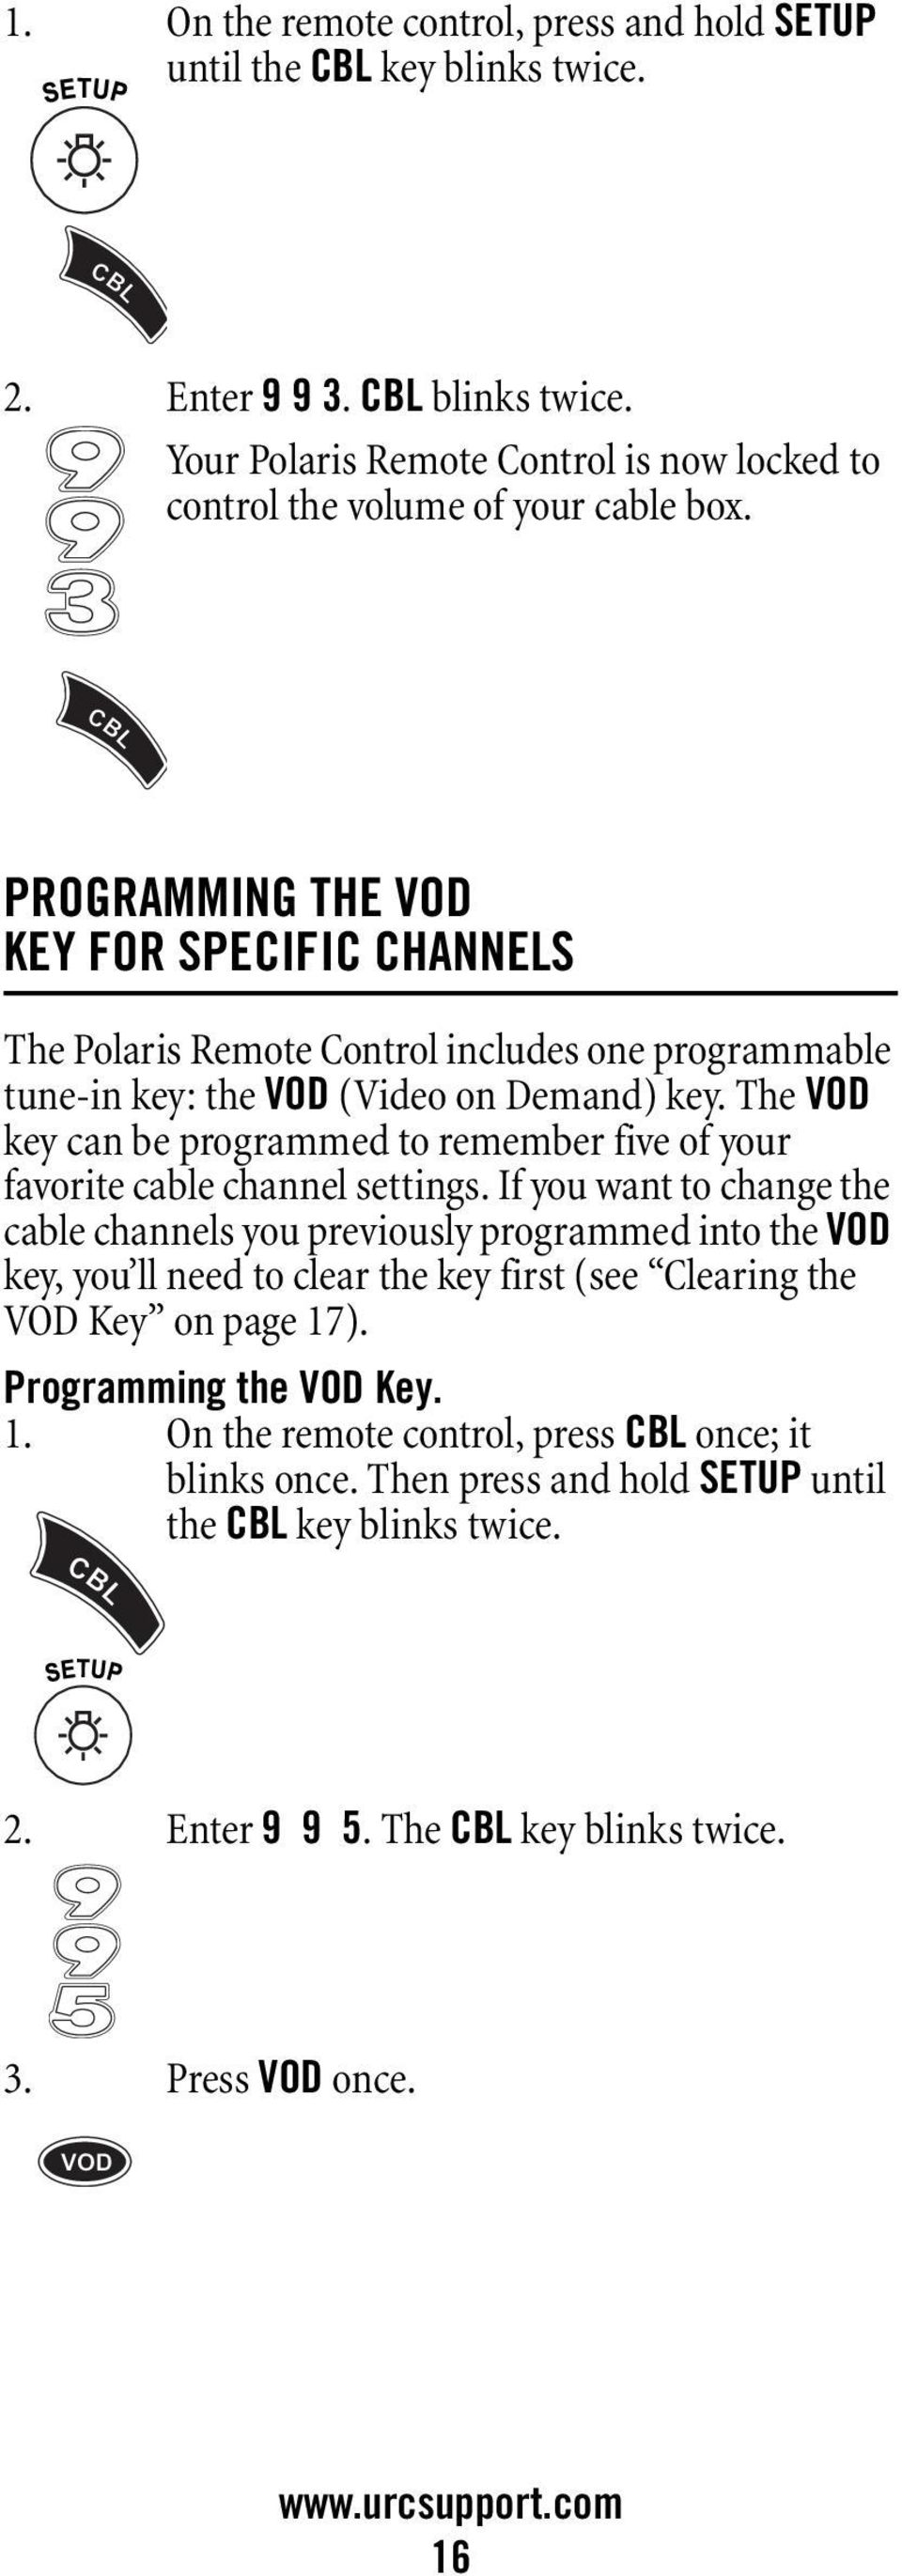 The VOD key can be programmed to remember five of your favorite cable channel settings.